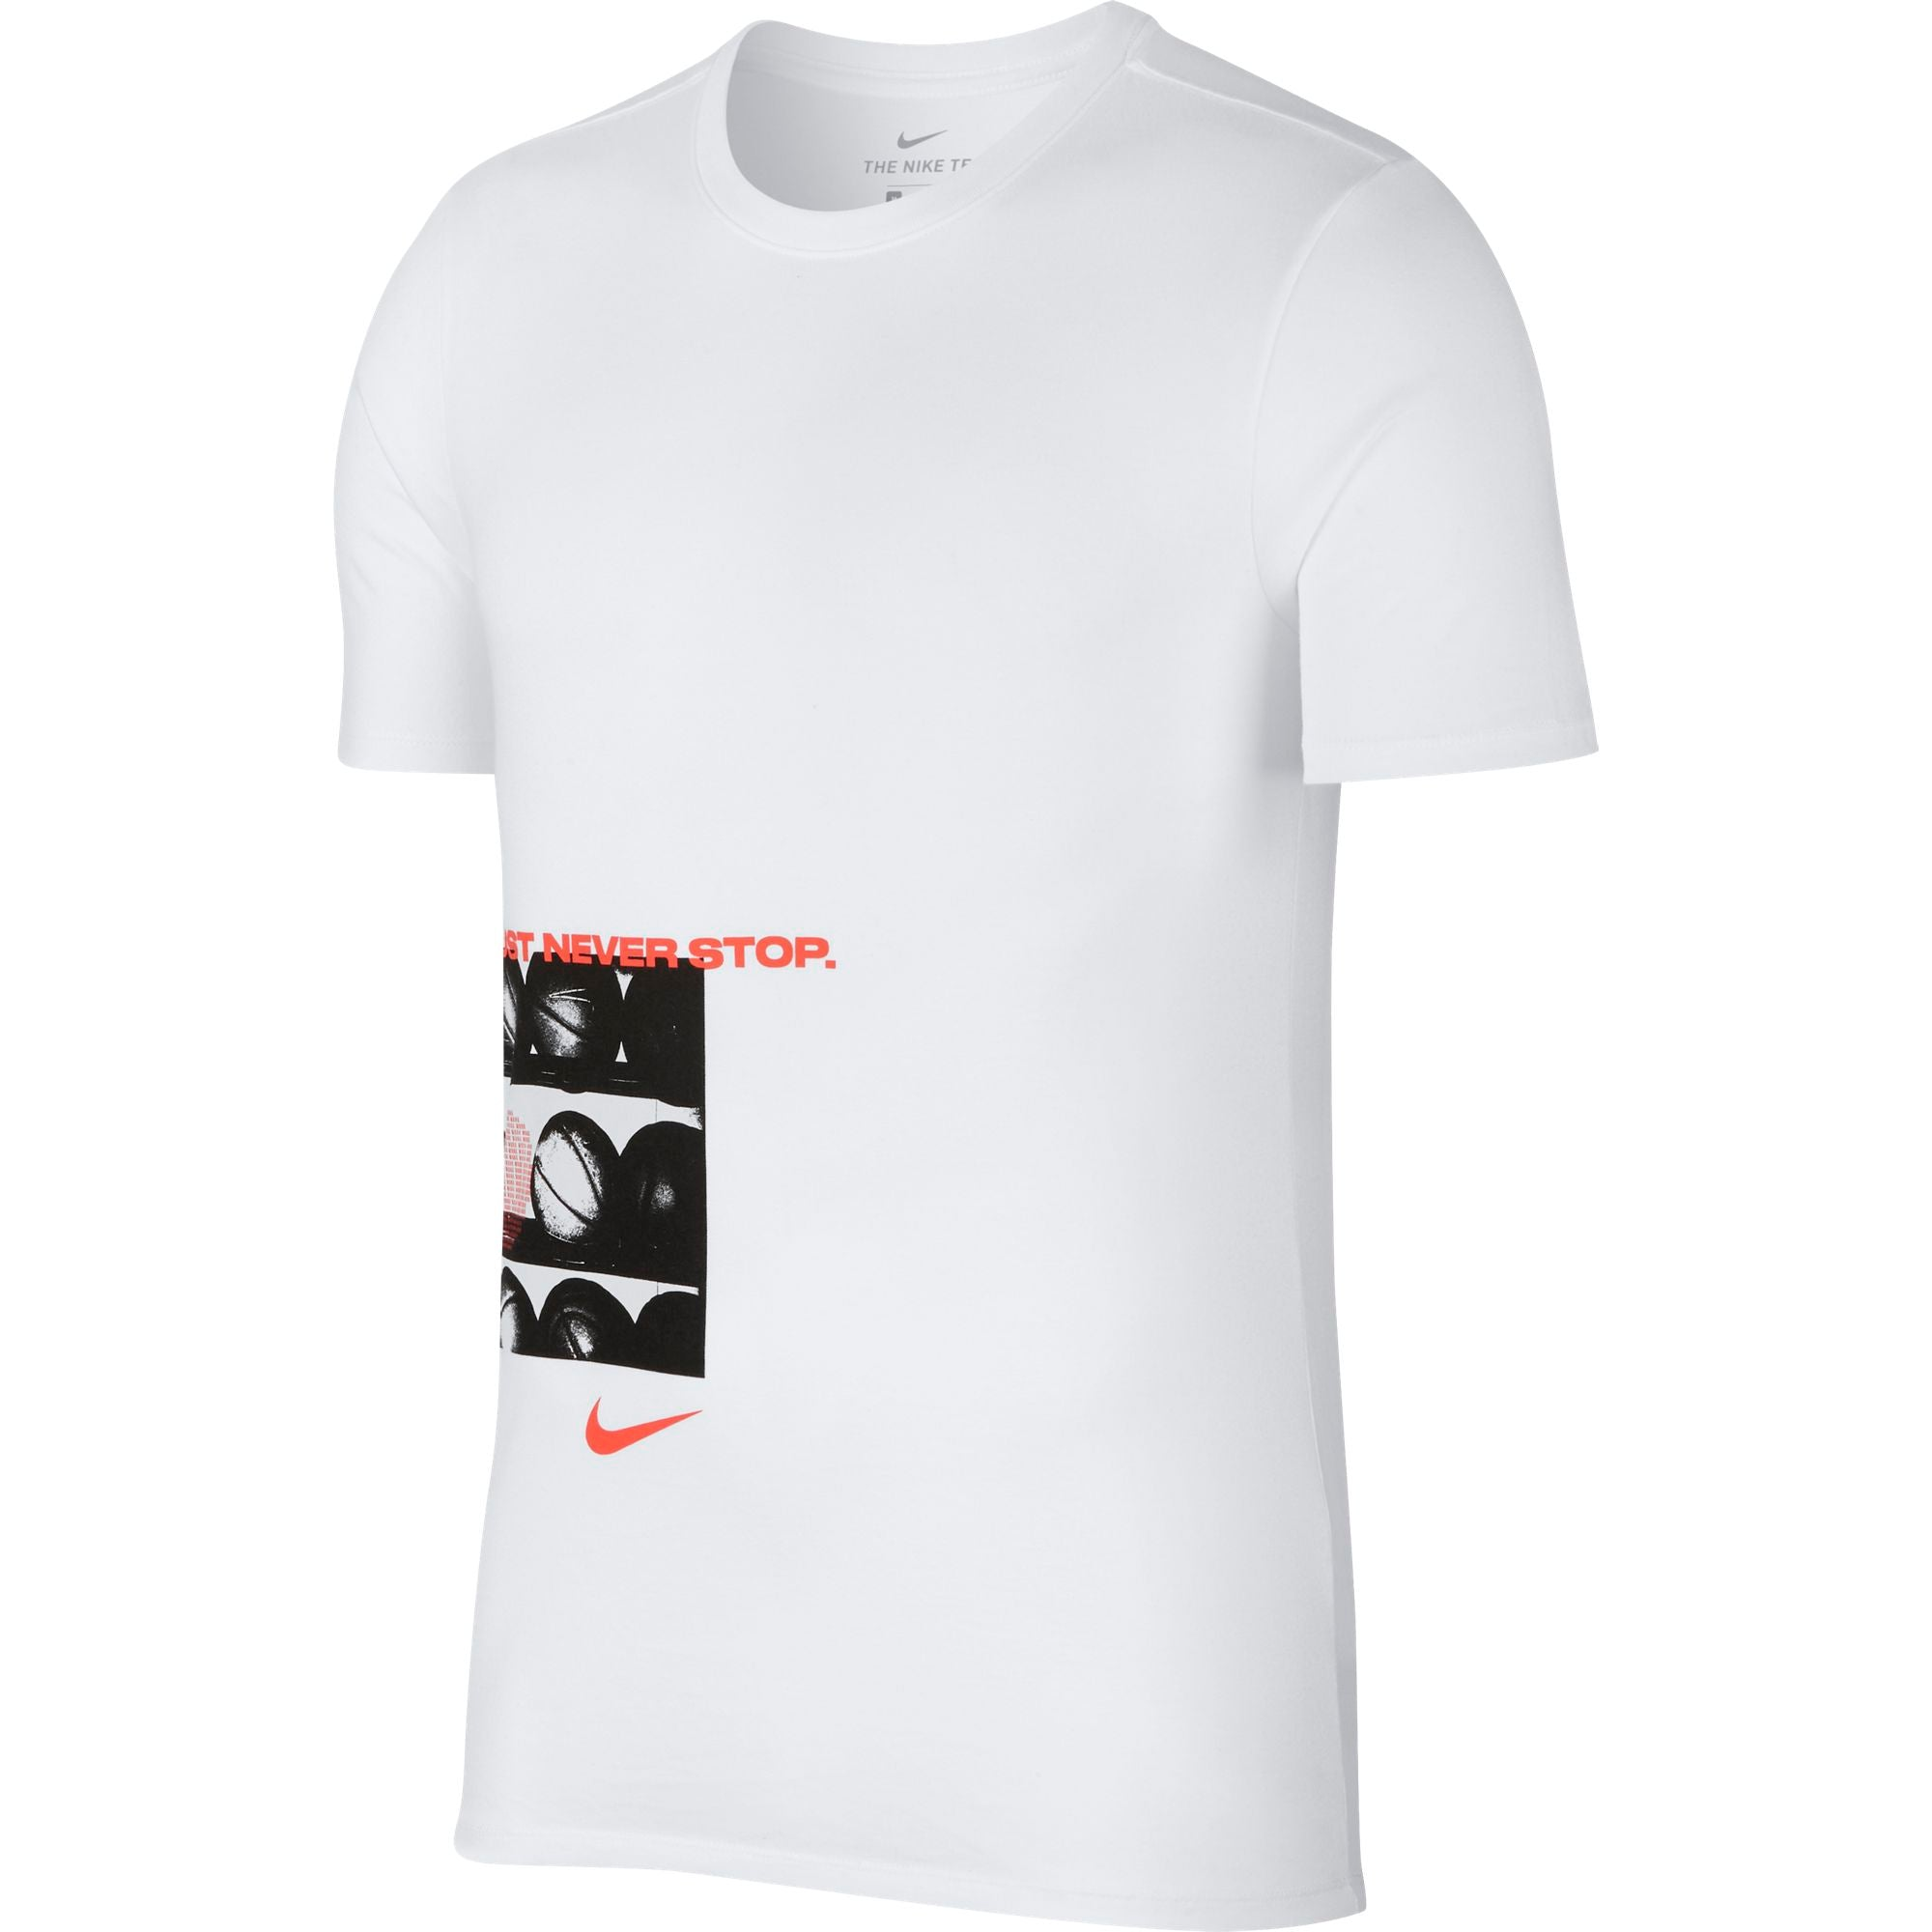 Nike Basketball Dry Just Never Stop Tee - NK-923687-100